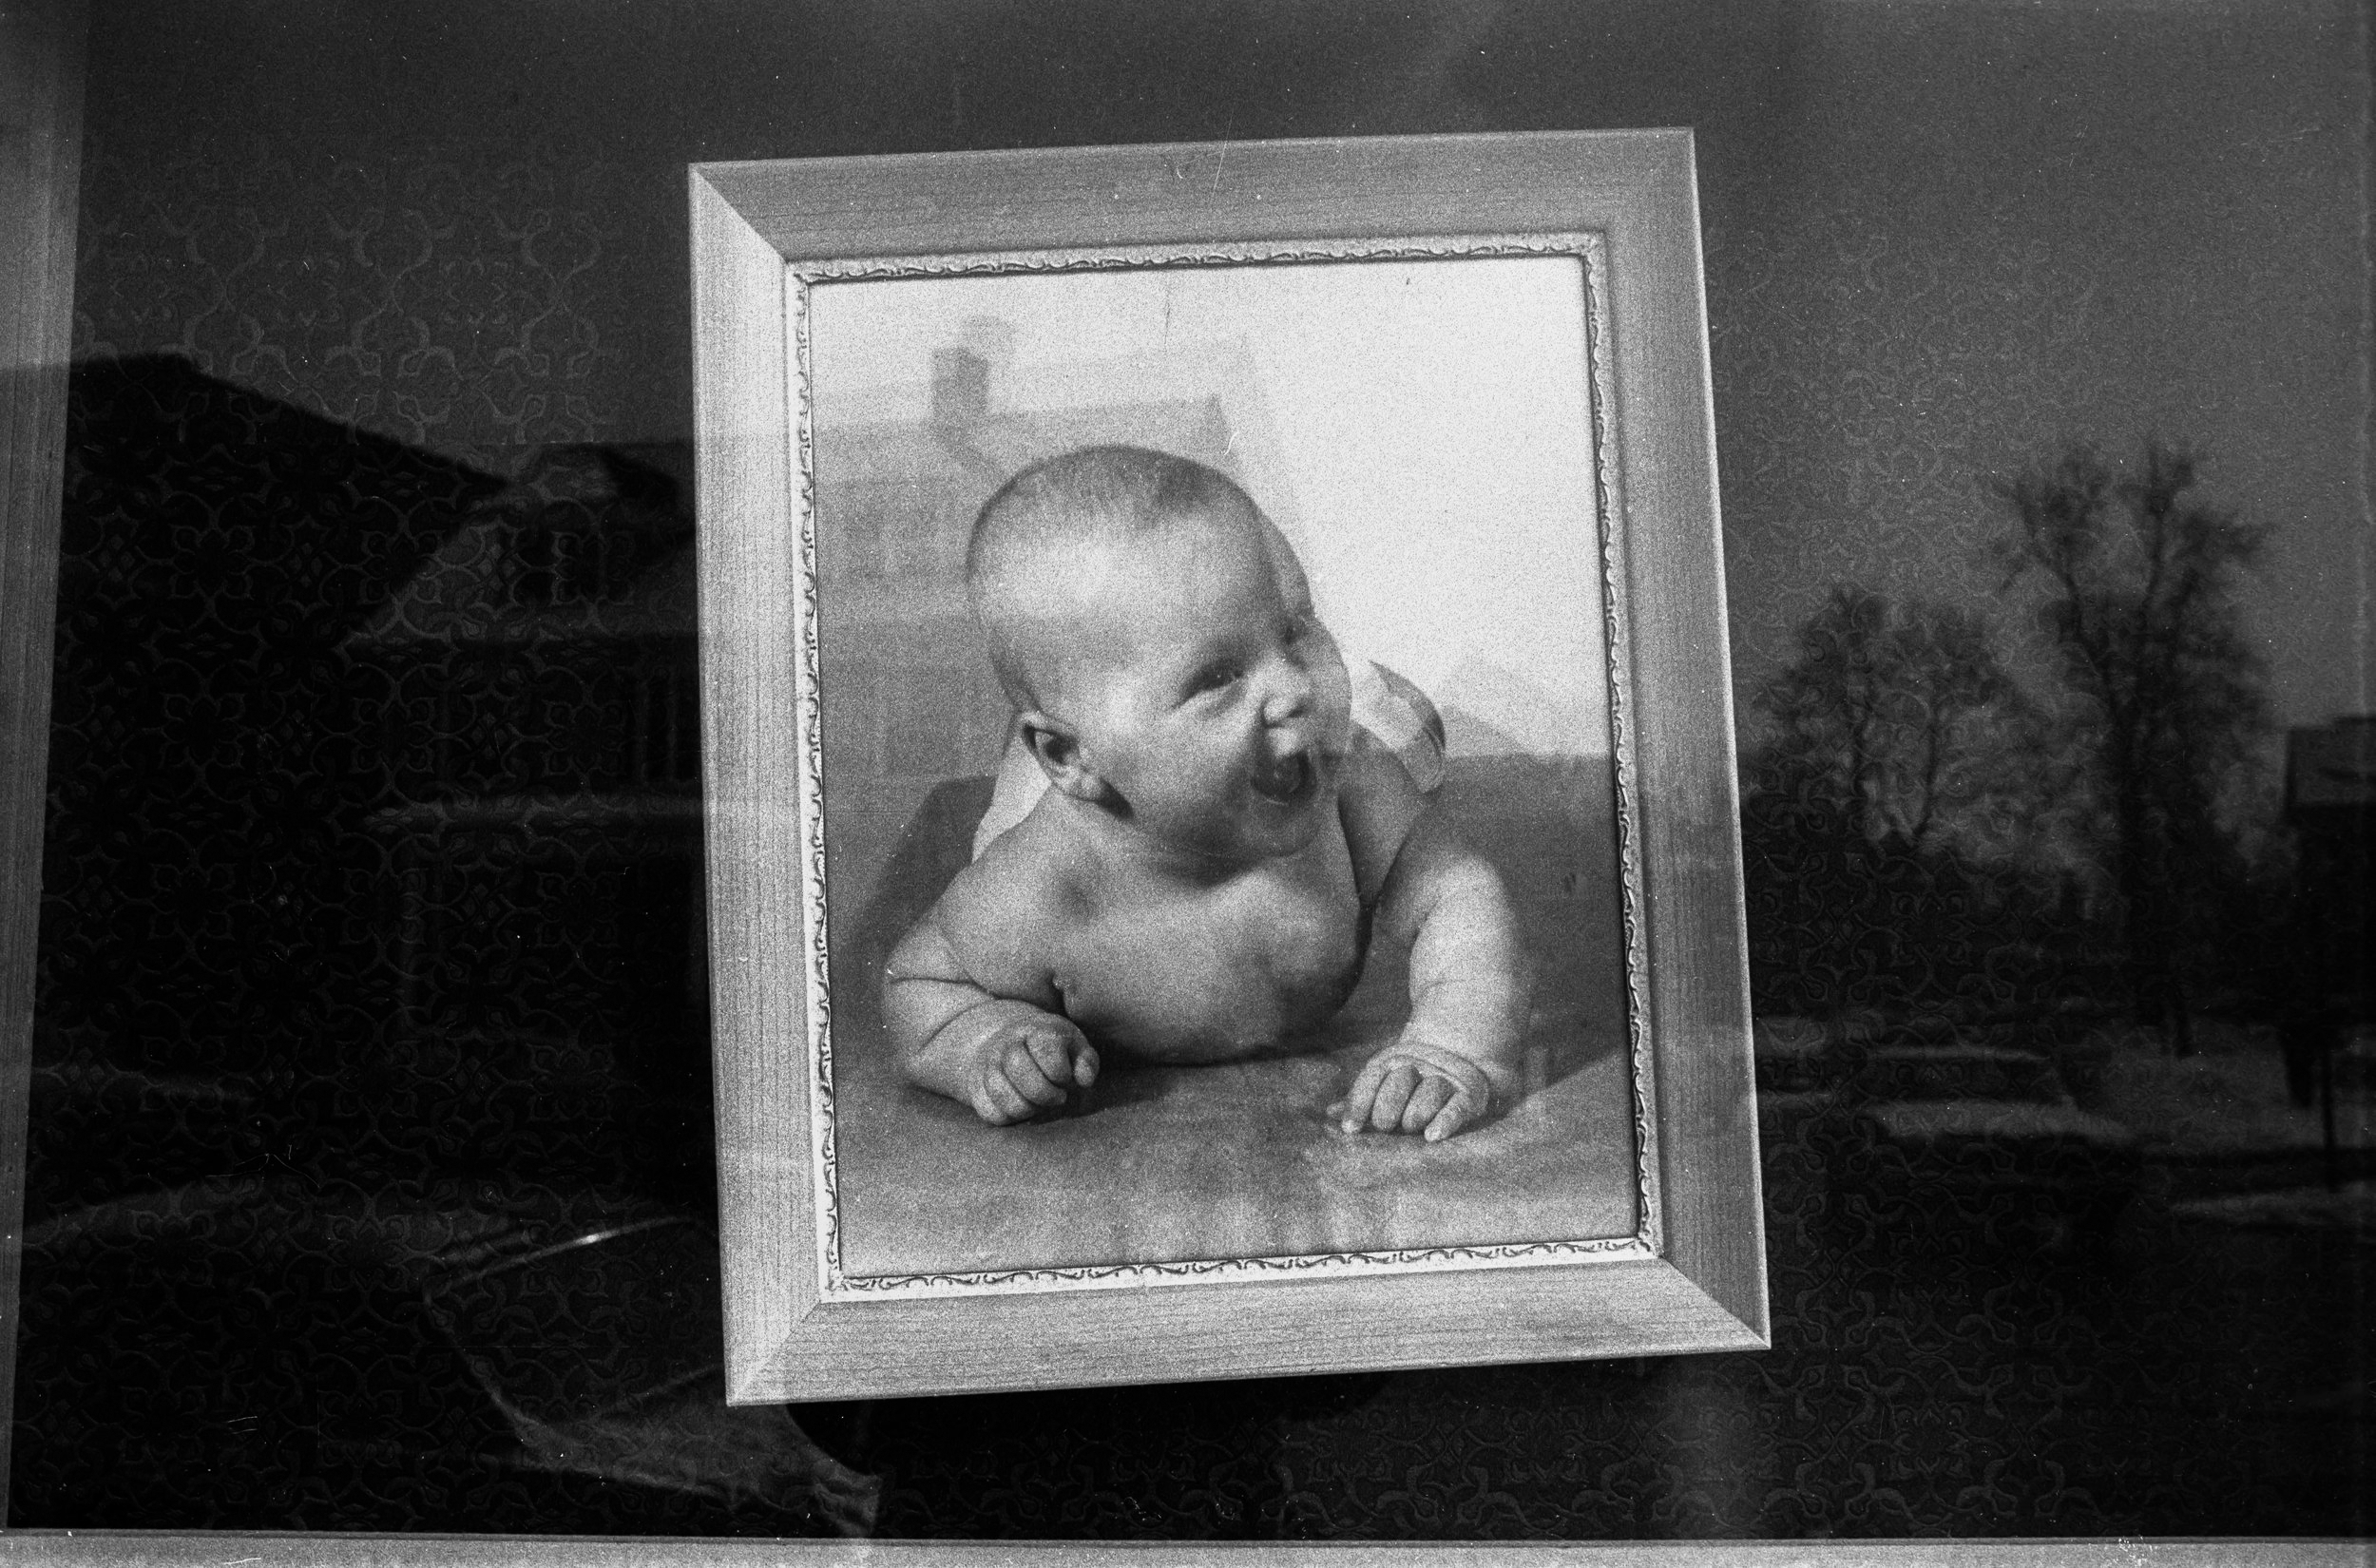 Self Portrait as Baby, Rochester, NY 1968